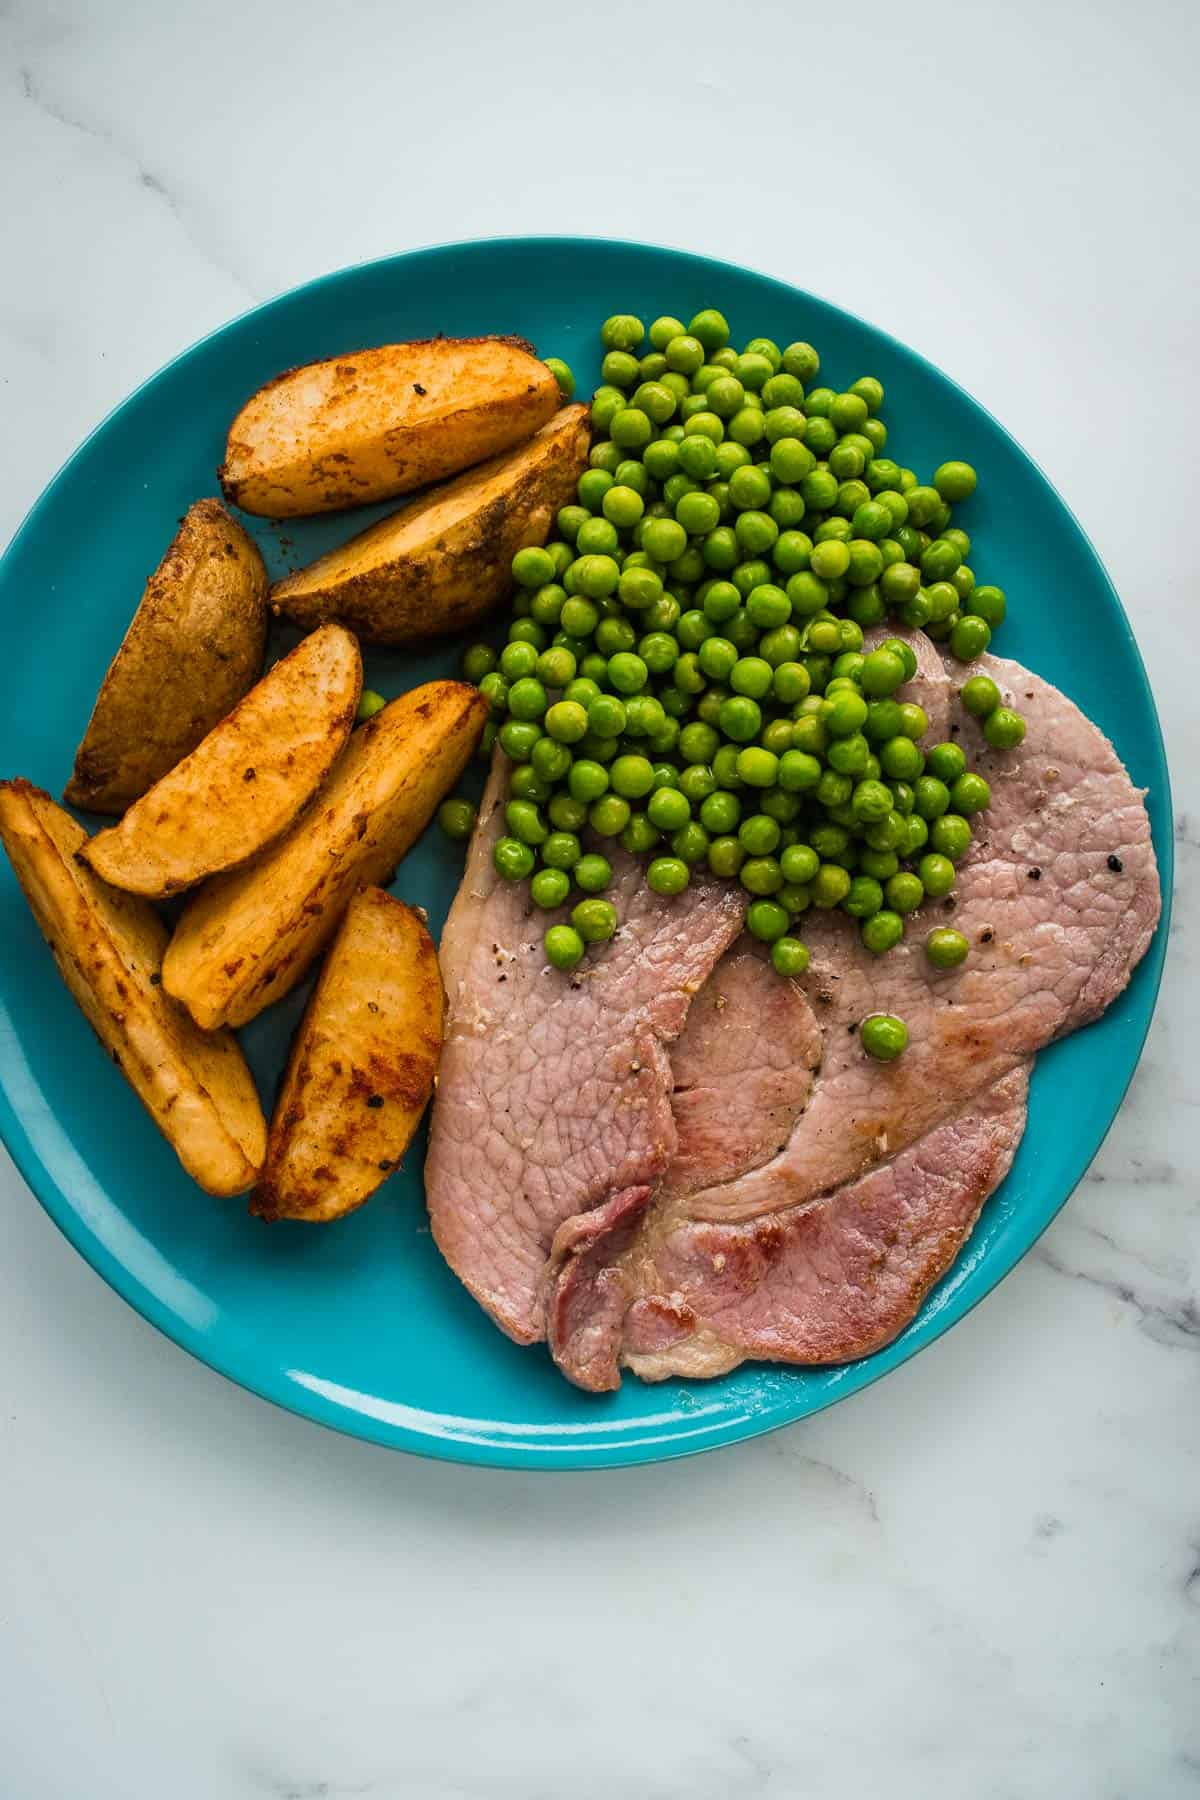 Gammon steaks on a plate with potato wedges and peas.